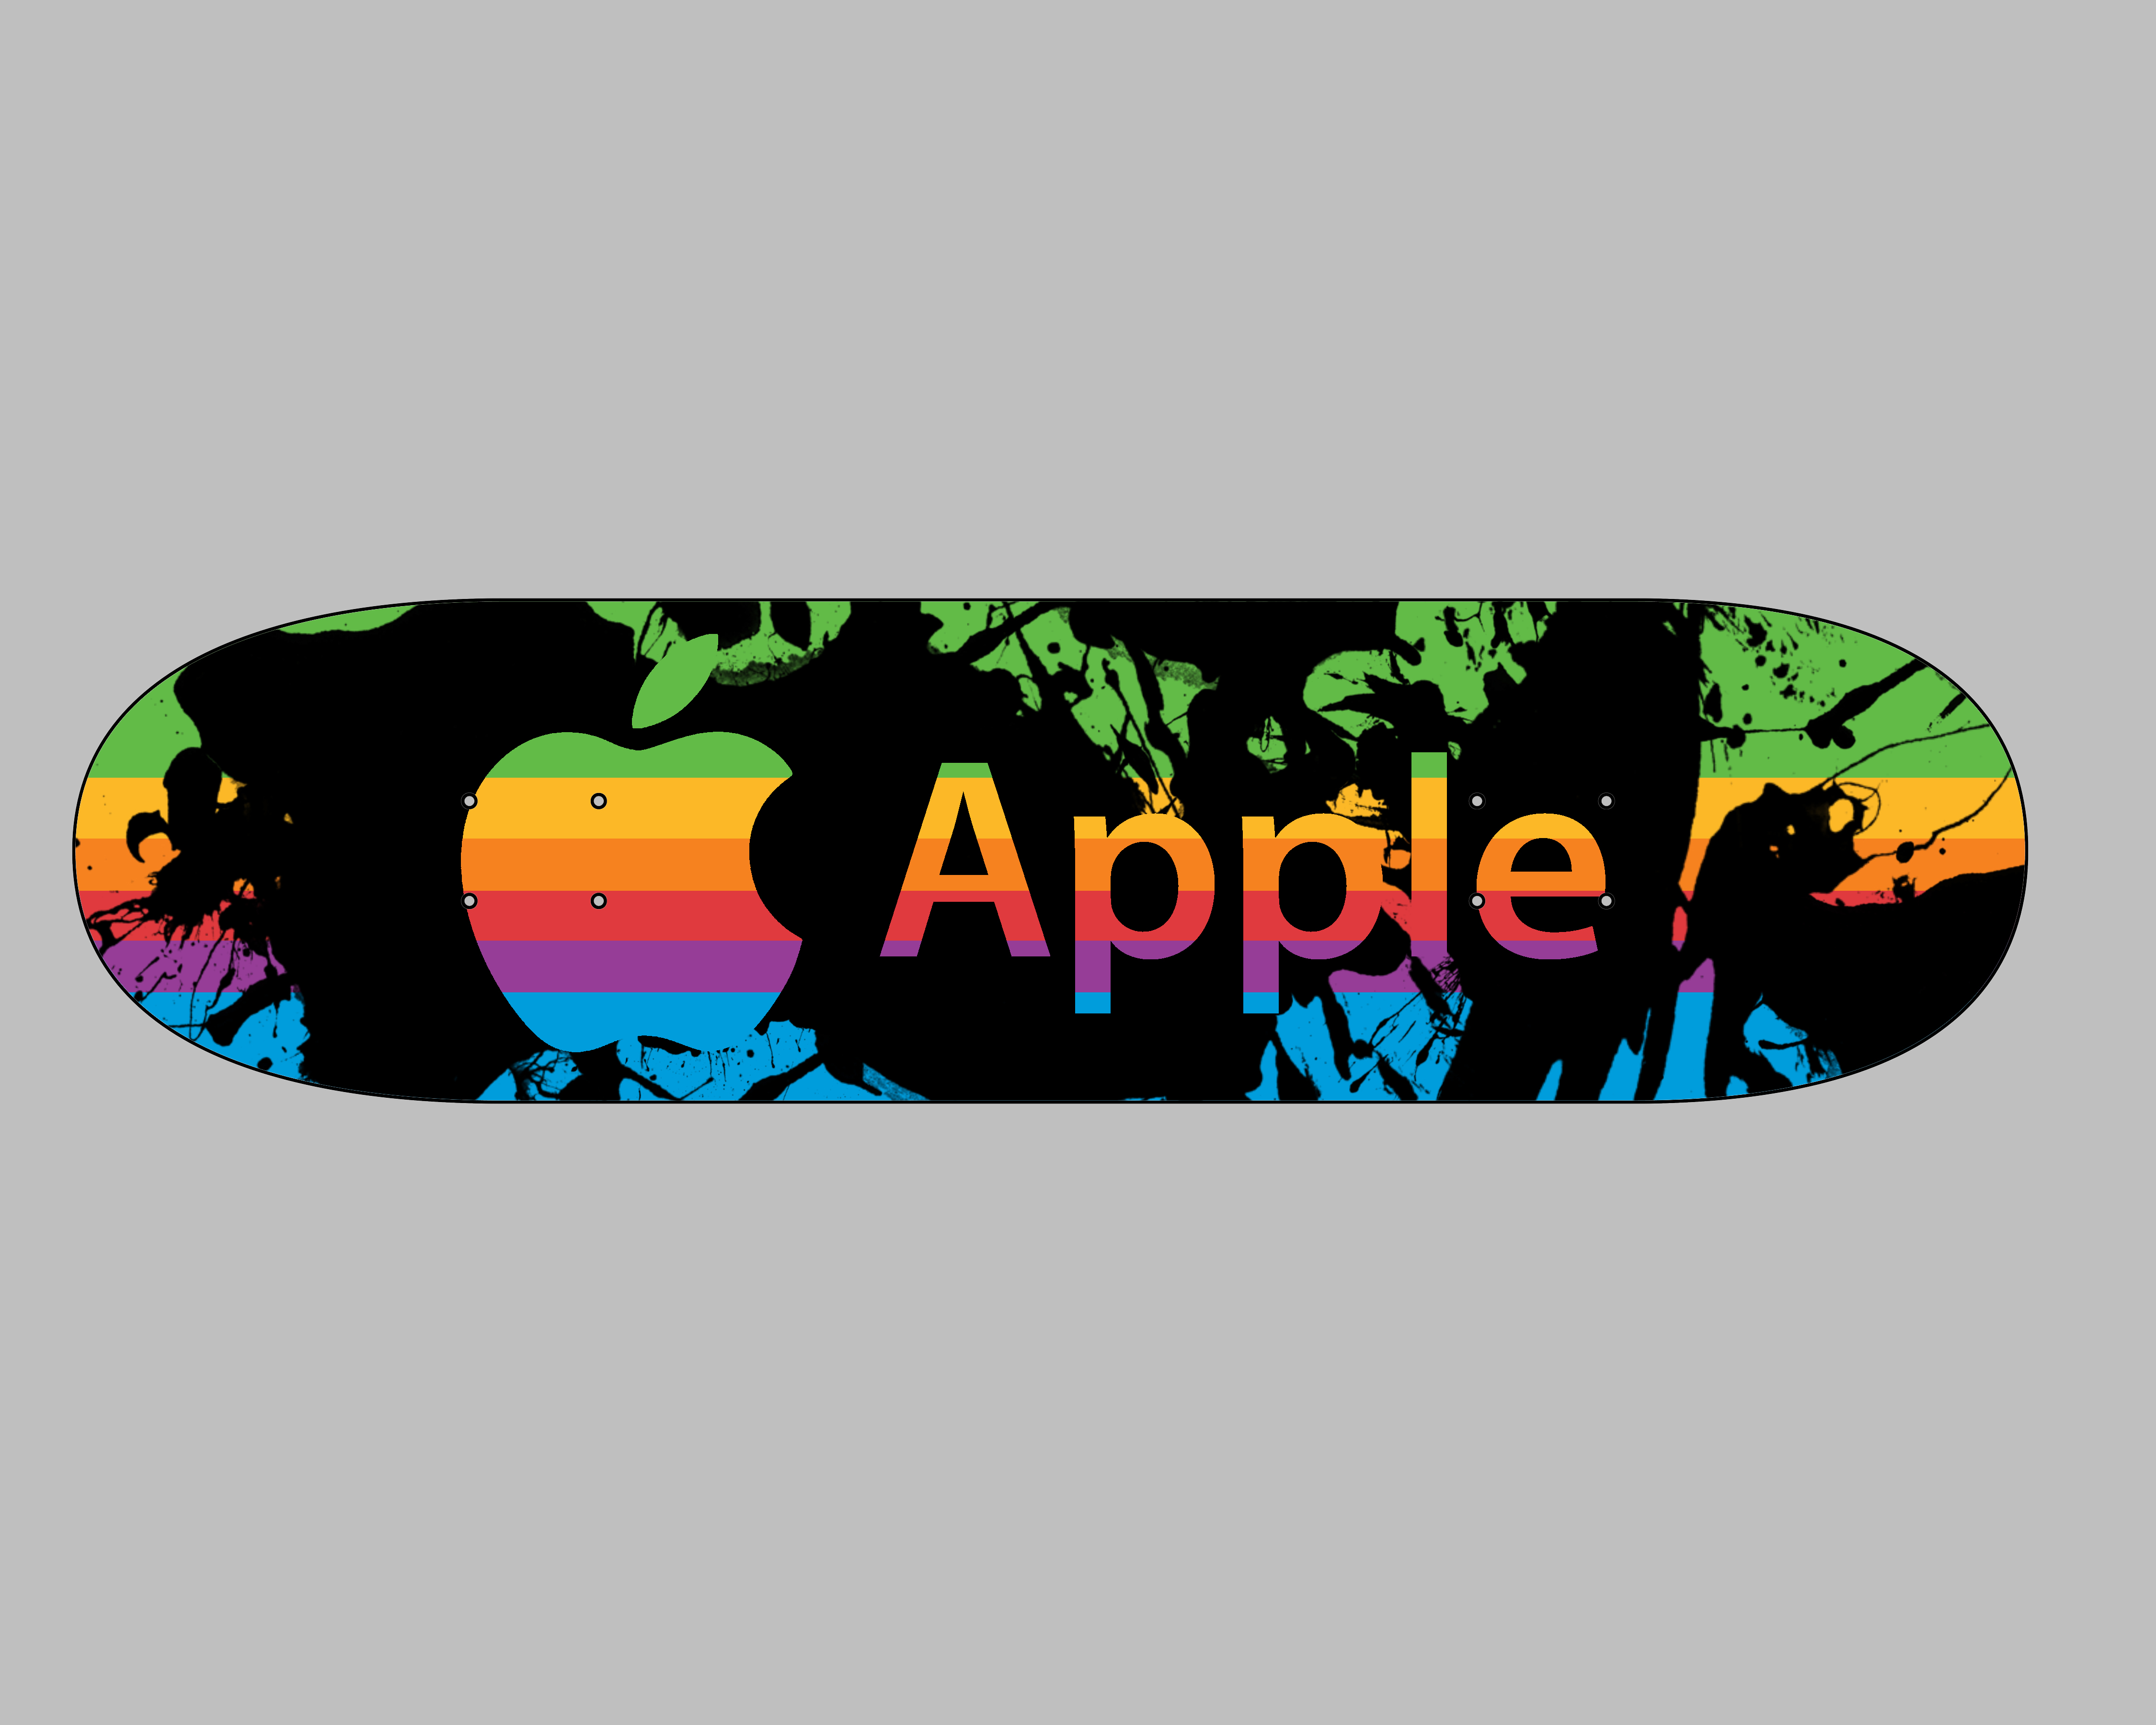 apple skateboard design by titnendo designs interfaces industrial